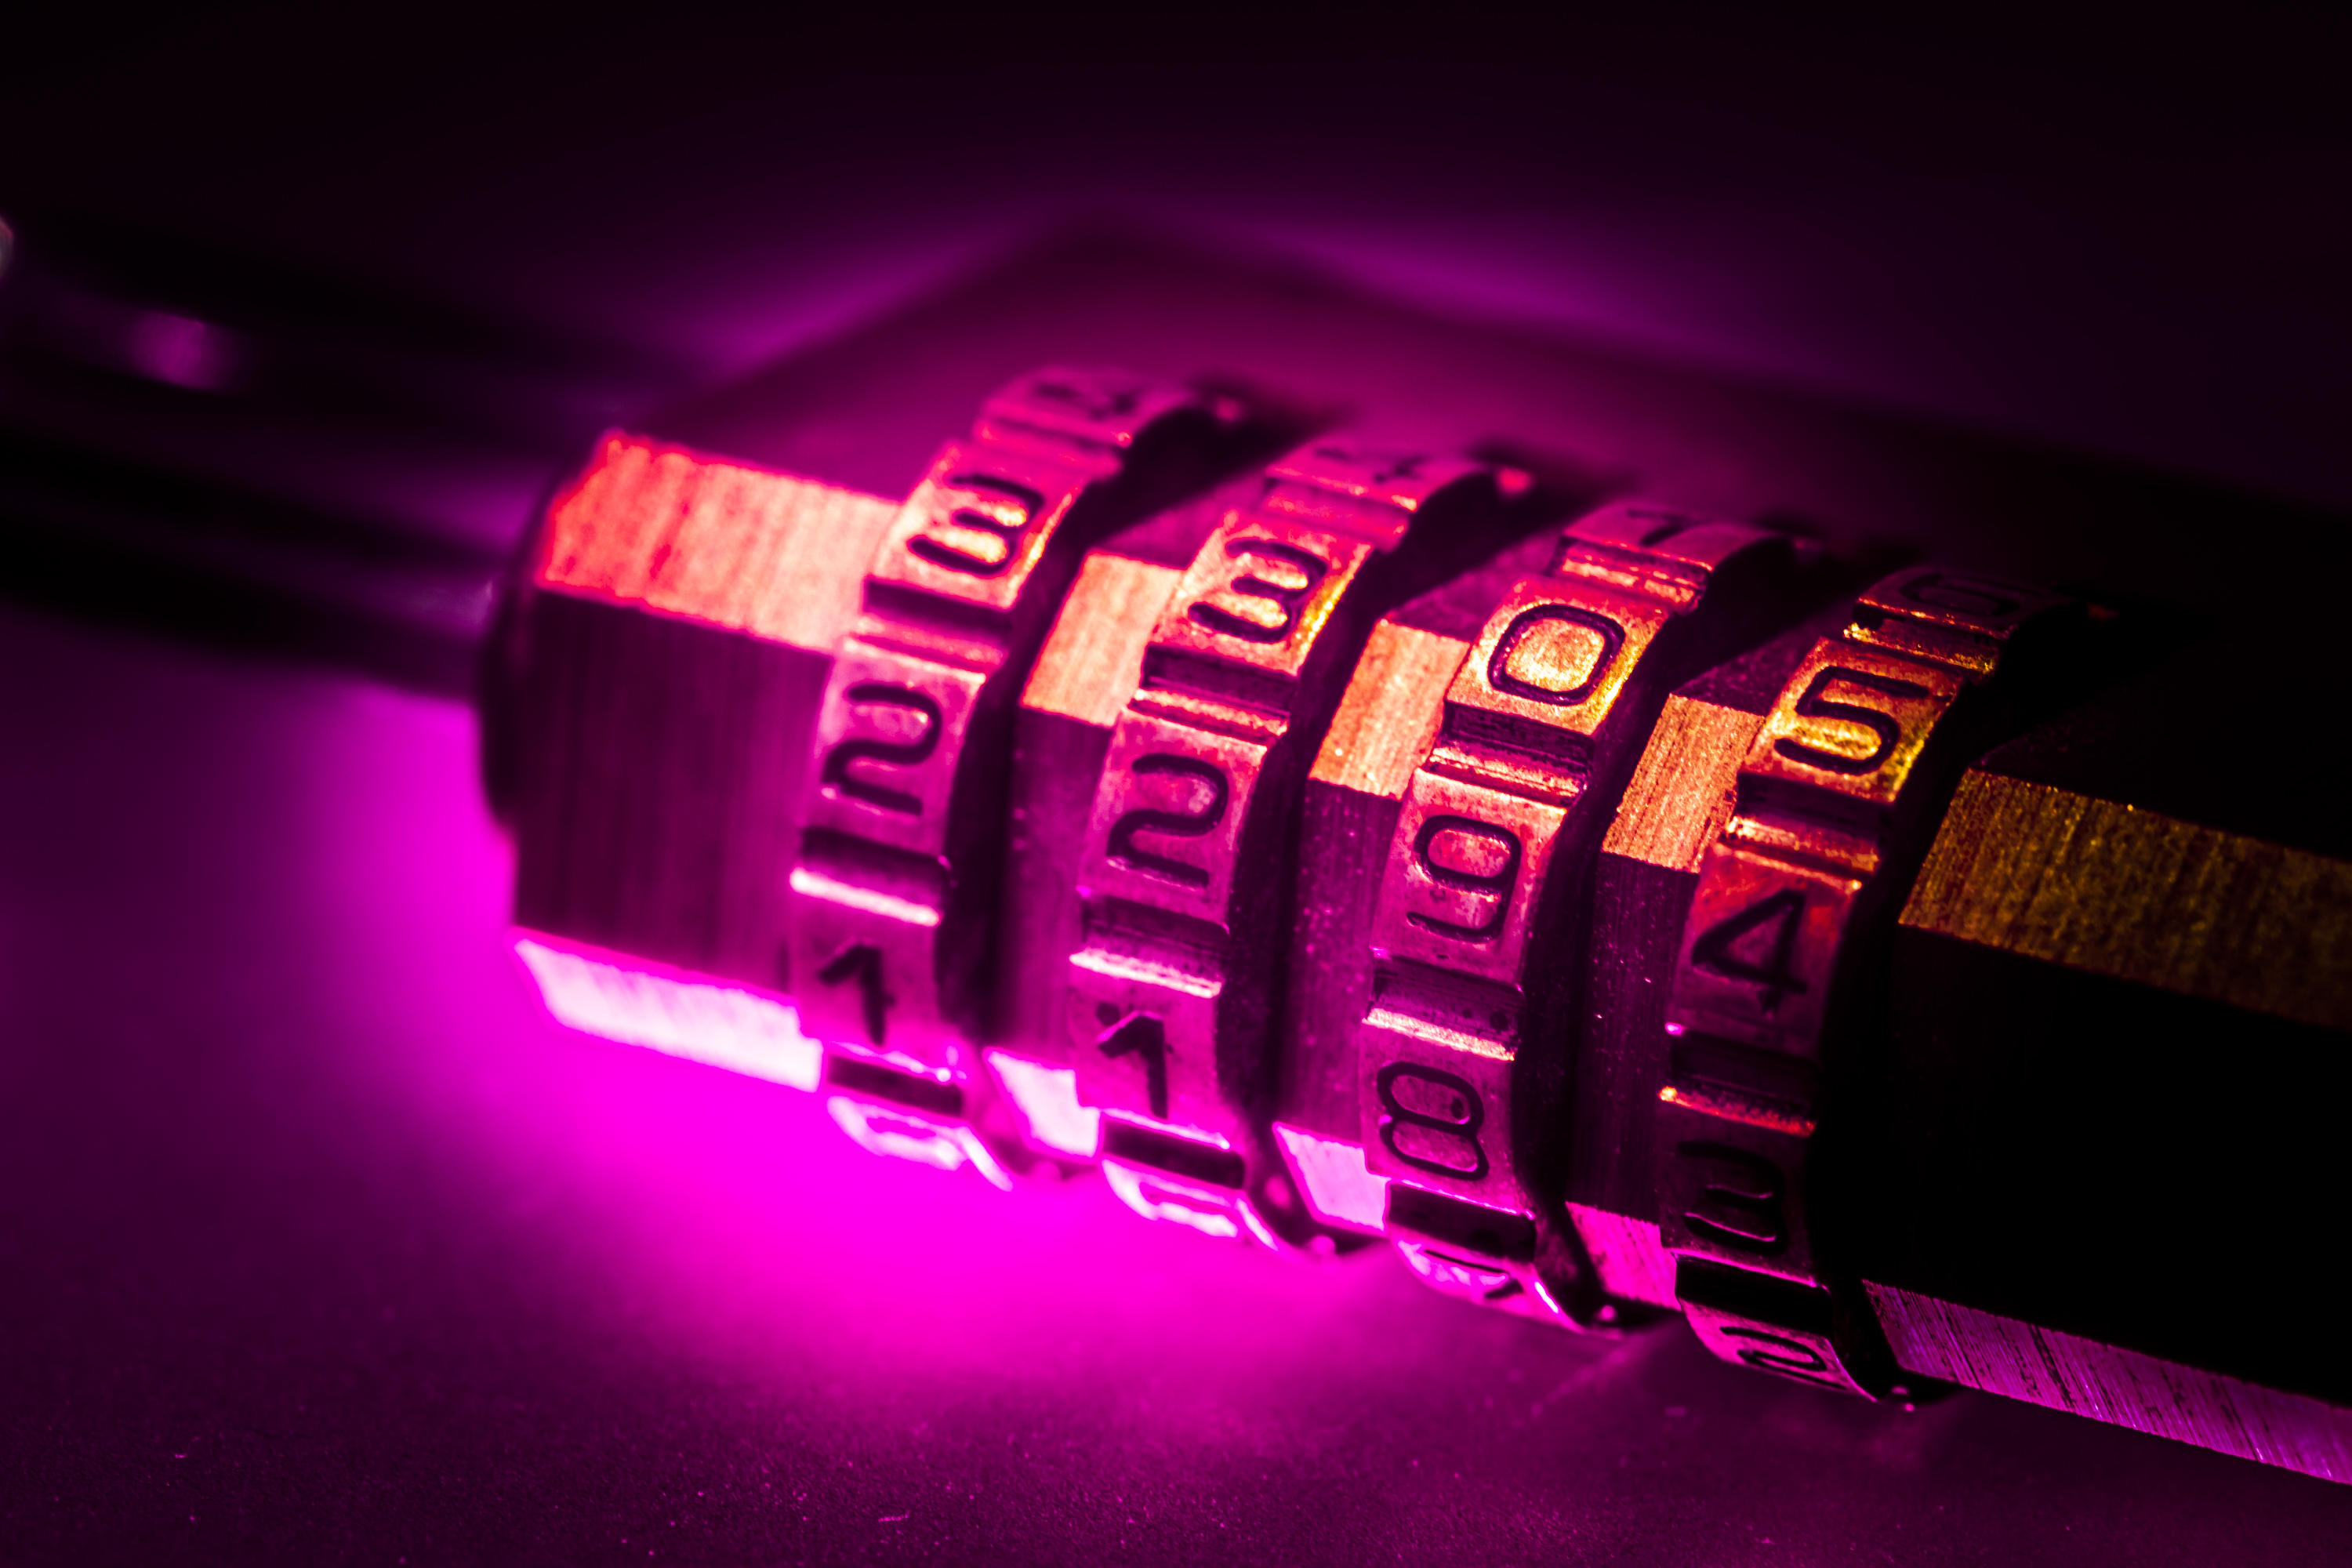 Picture of a combination lock bathed in a purple glow